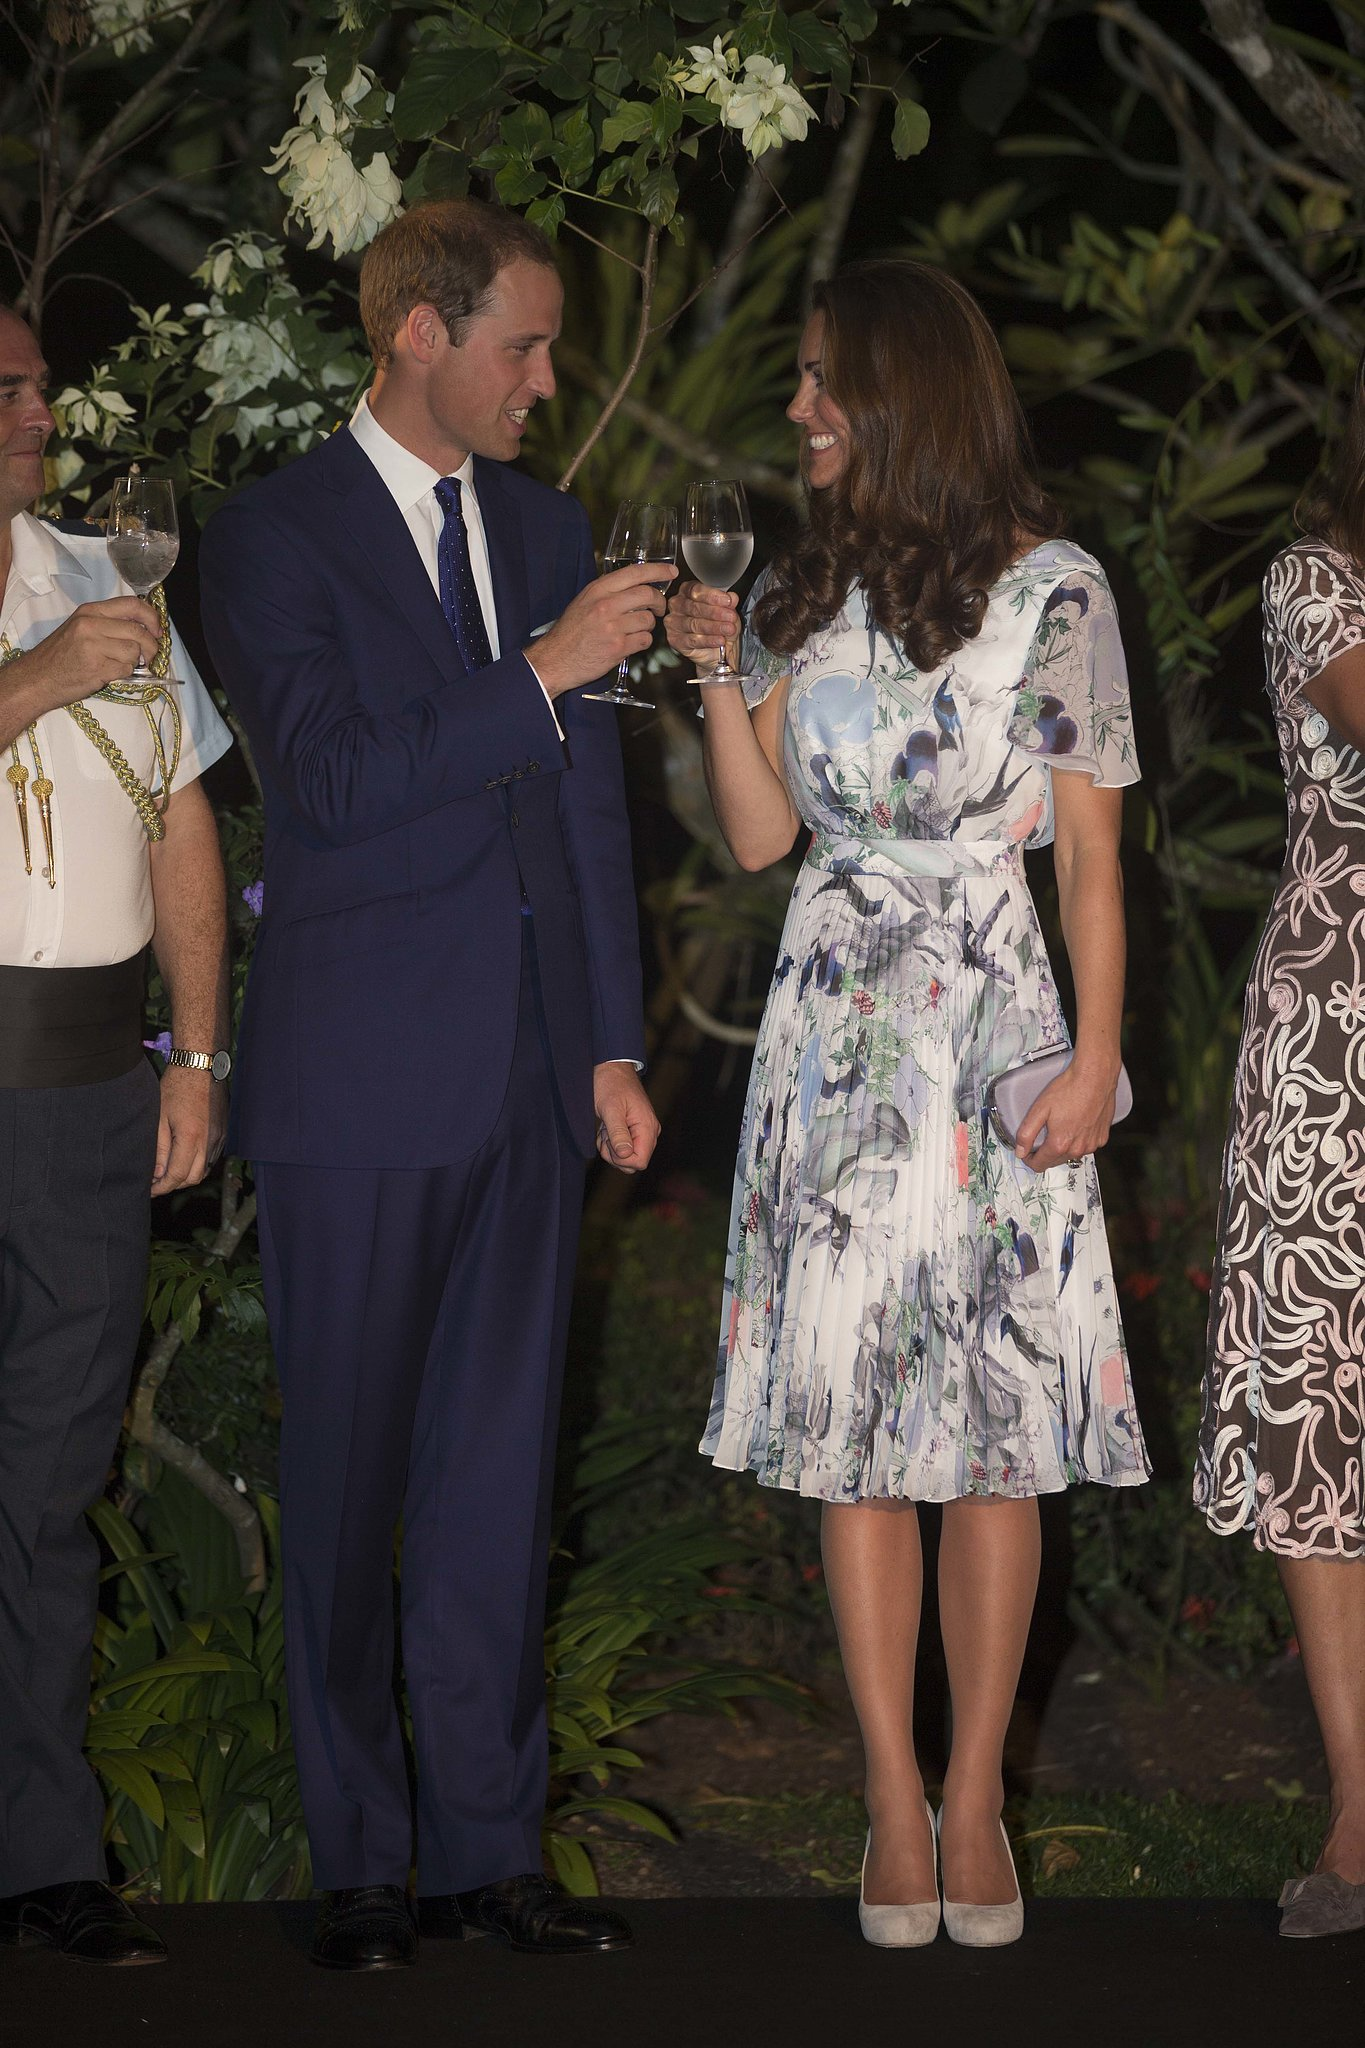 In September 2012, the couple toasted during